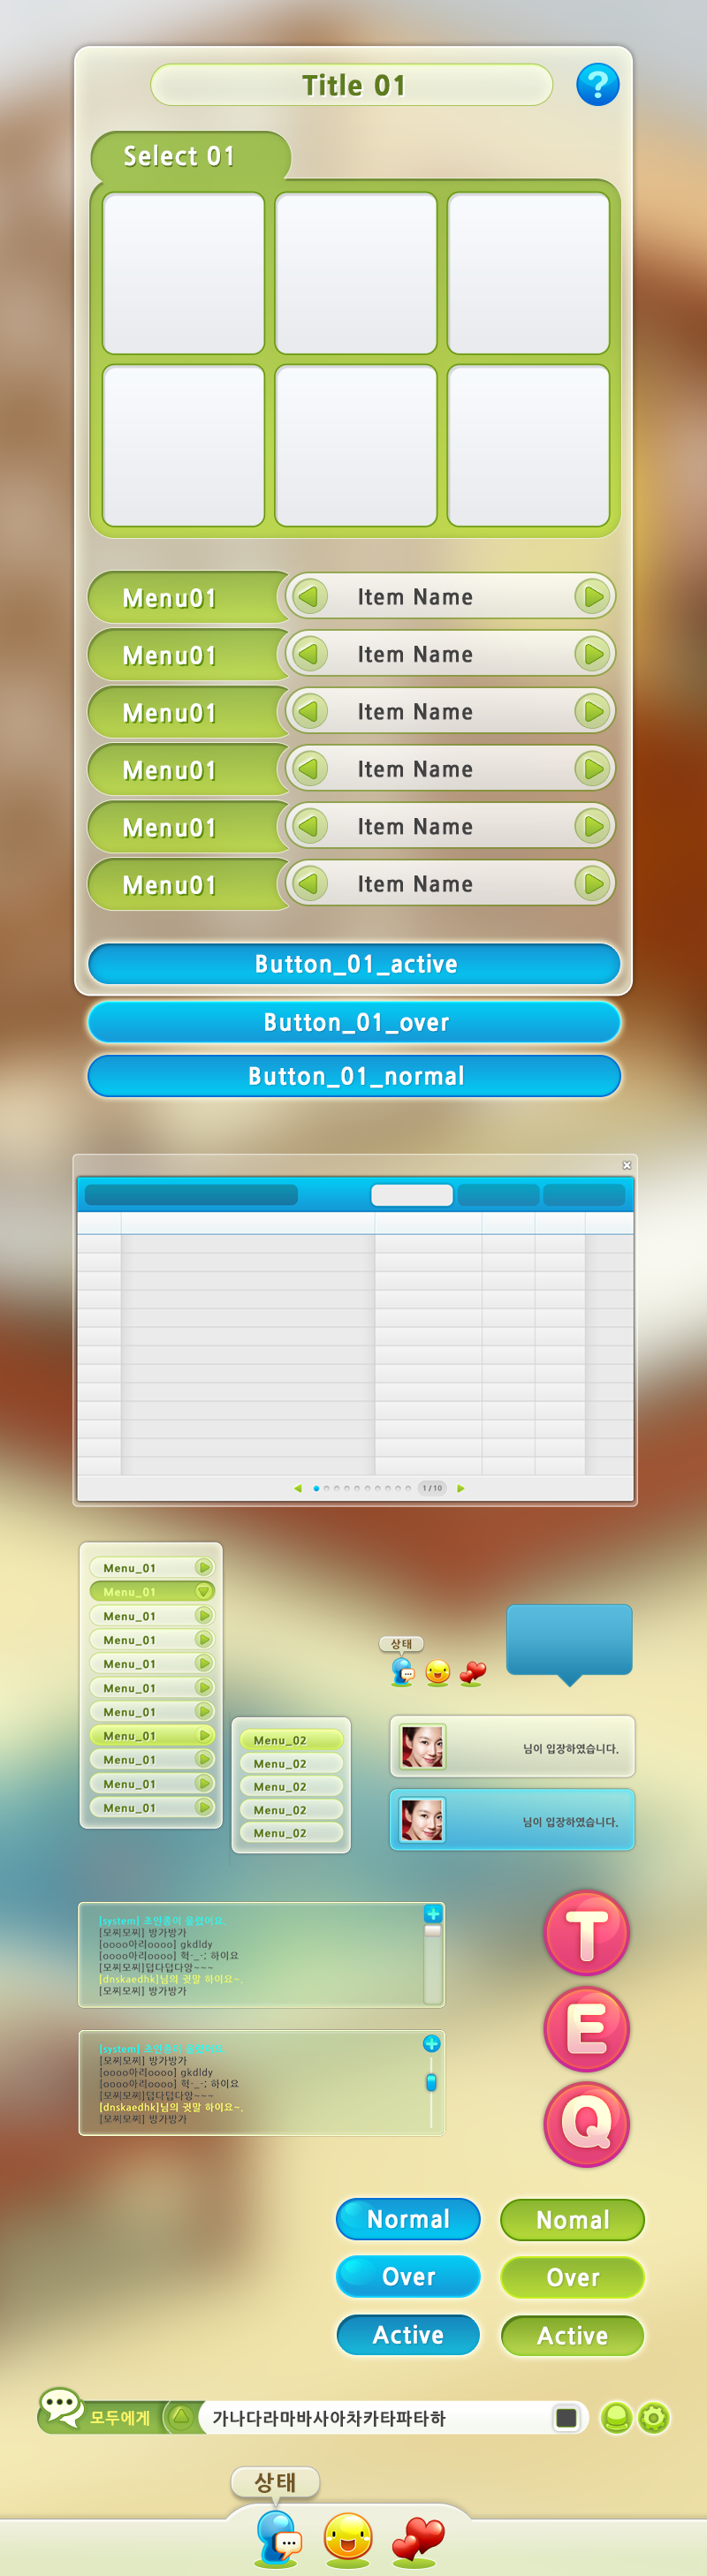 Netmable Online Game C.CHAT UI